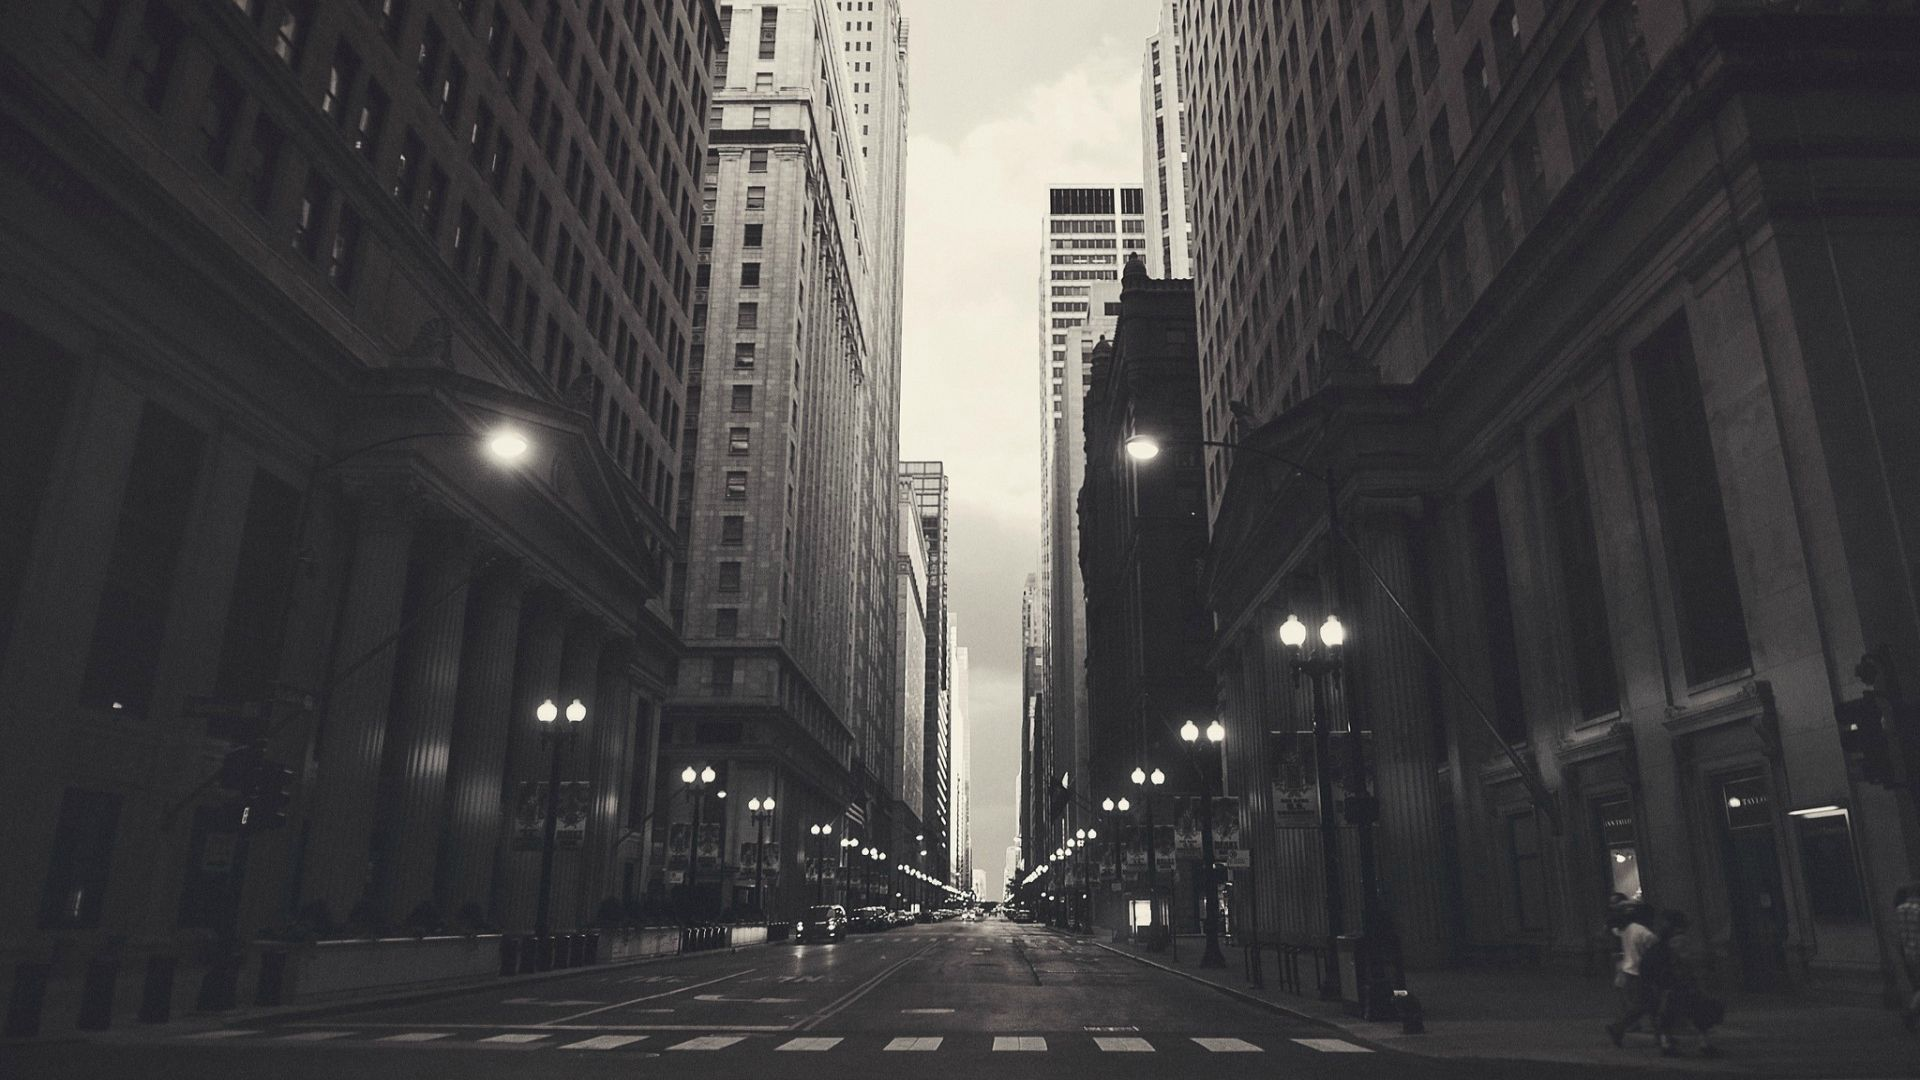 65 Hd City Wallpapers Lasalle Street Station 1920x1080 Wallpaper Teahub Io